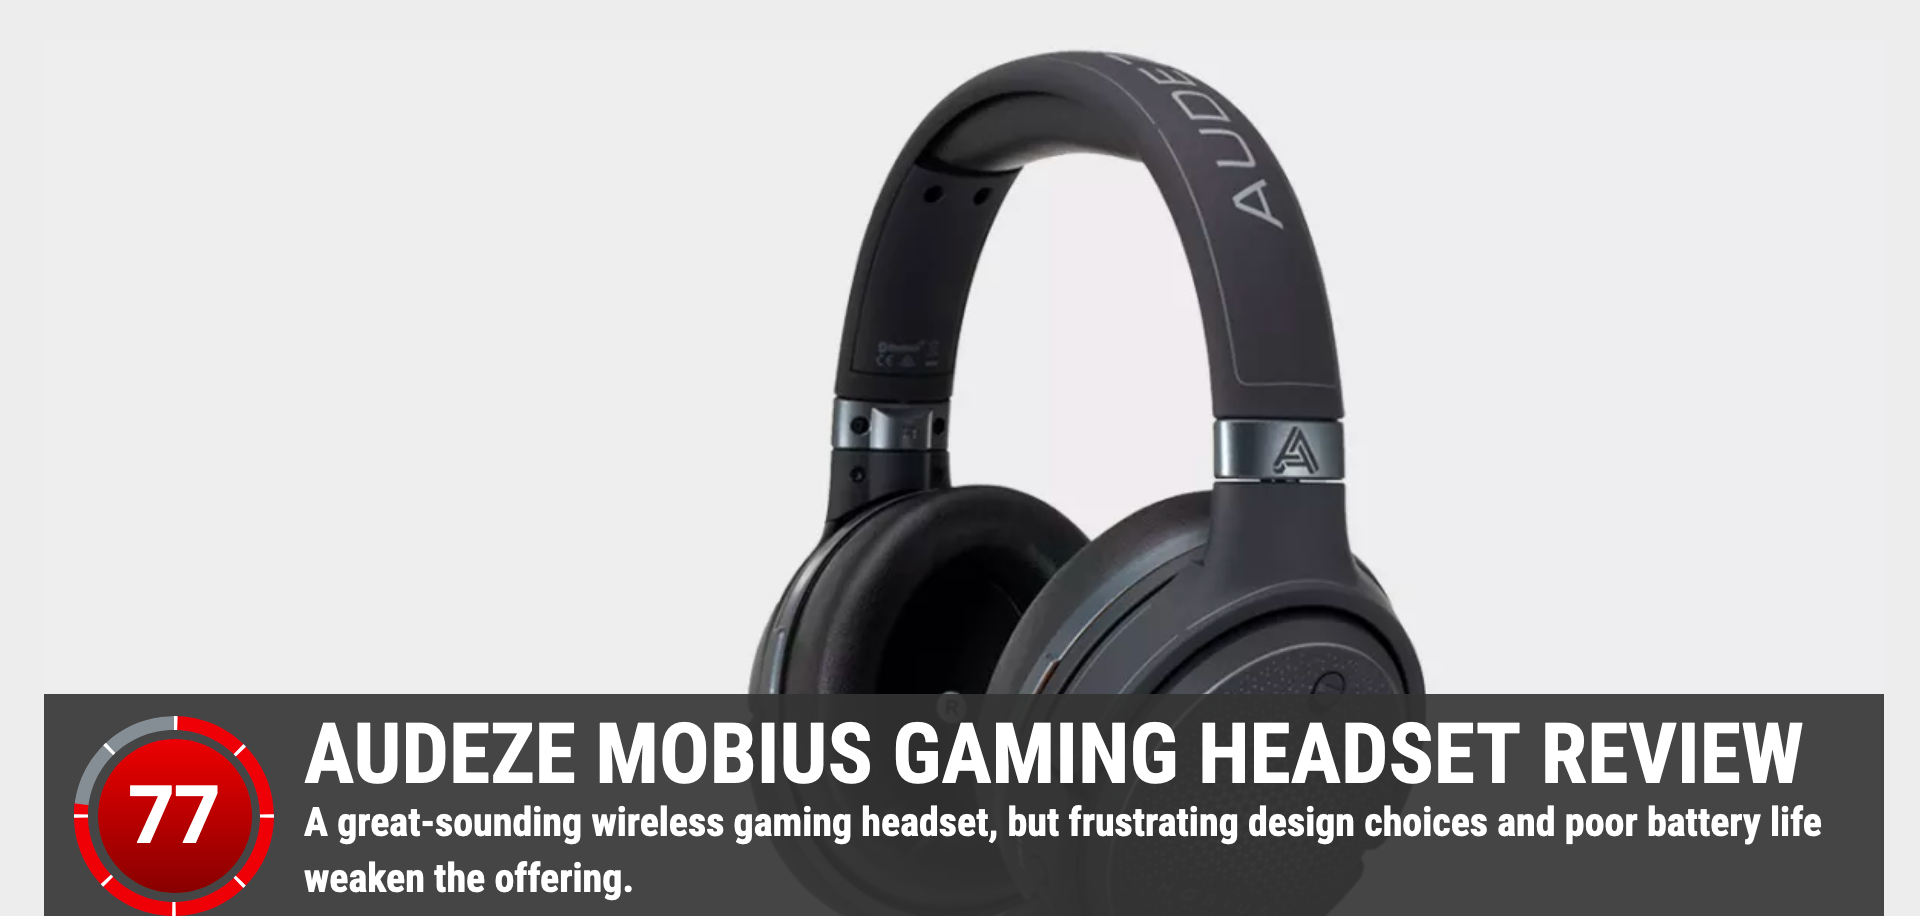 Pc Gamer Reviews The Audeze Mobius